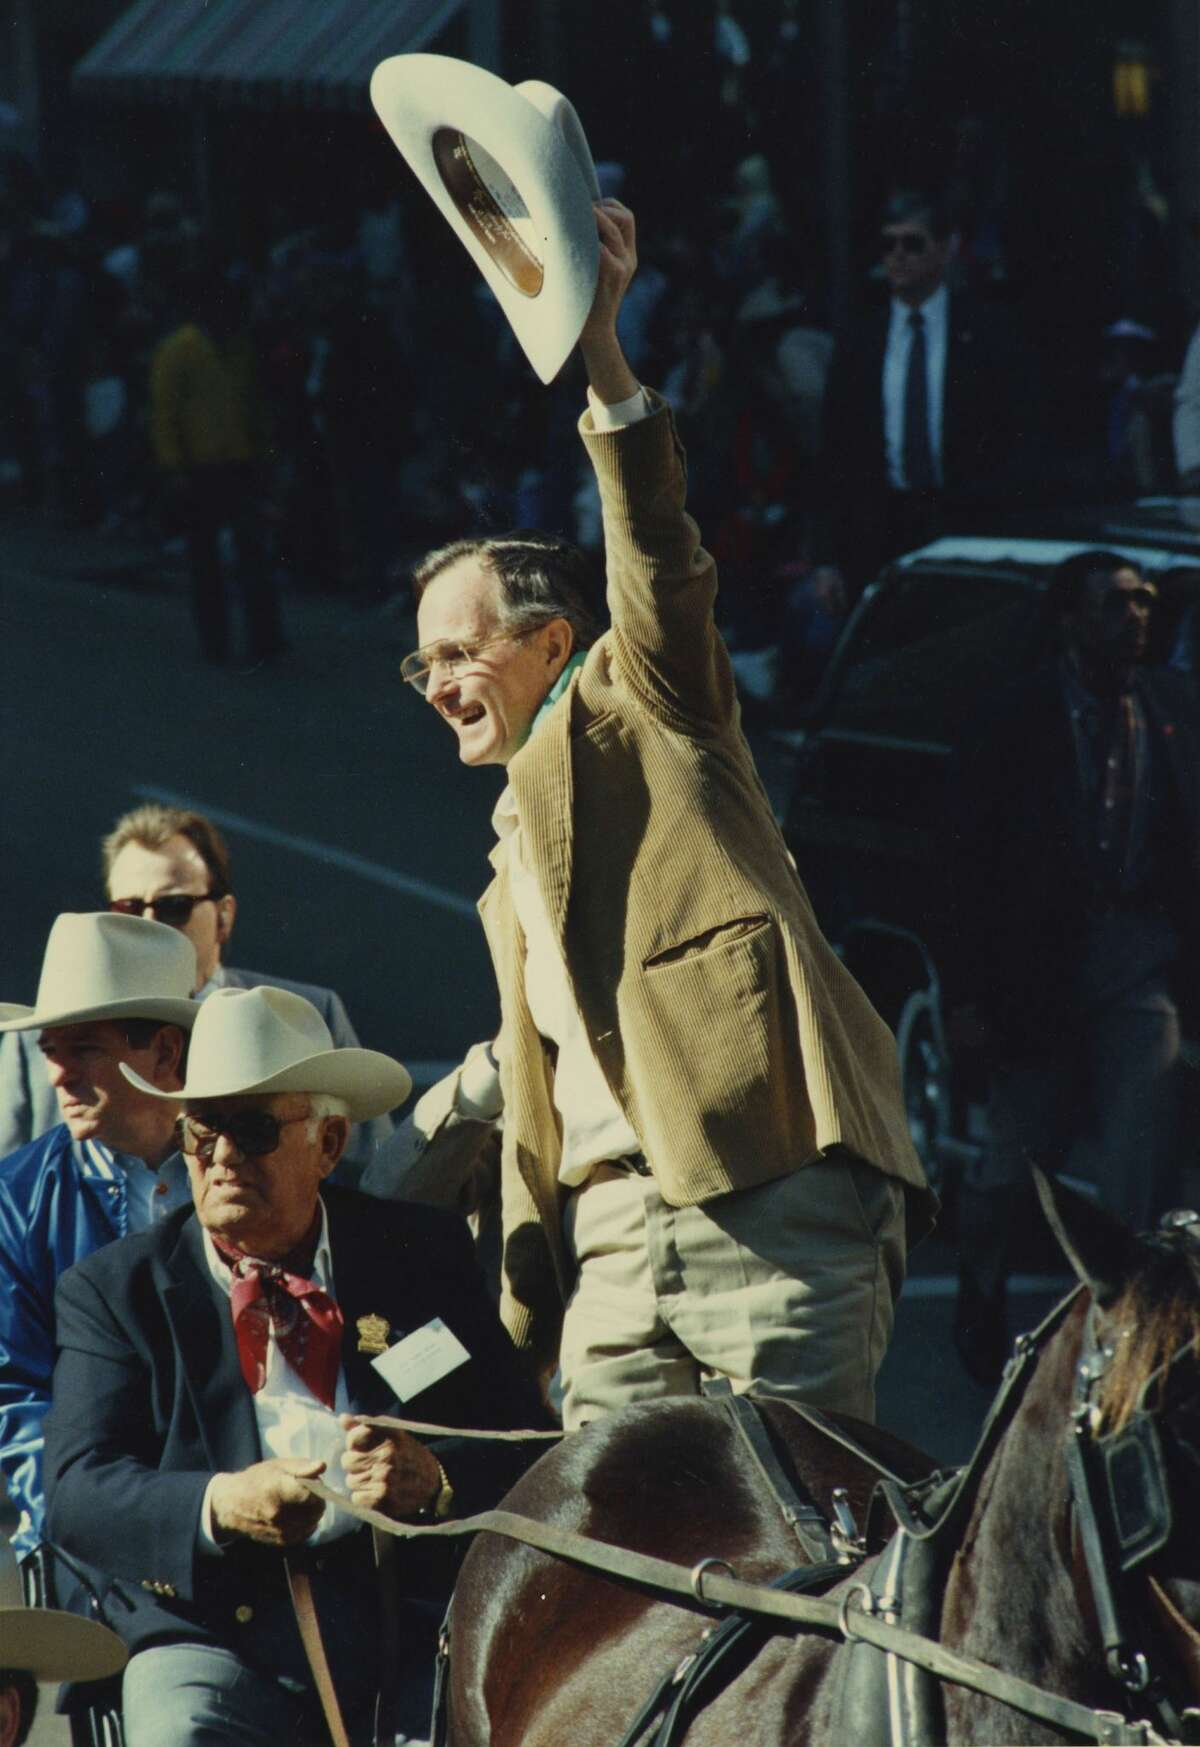 Vice President George Bush, Republican candidate for president, serves as grand marshal of the Houston Livestock Show and Rodeo parade. Bush waves his cowboy hat to parade goers in downtown Houston, Saturday, Feb, 20, 1988.